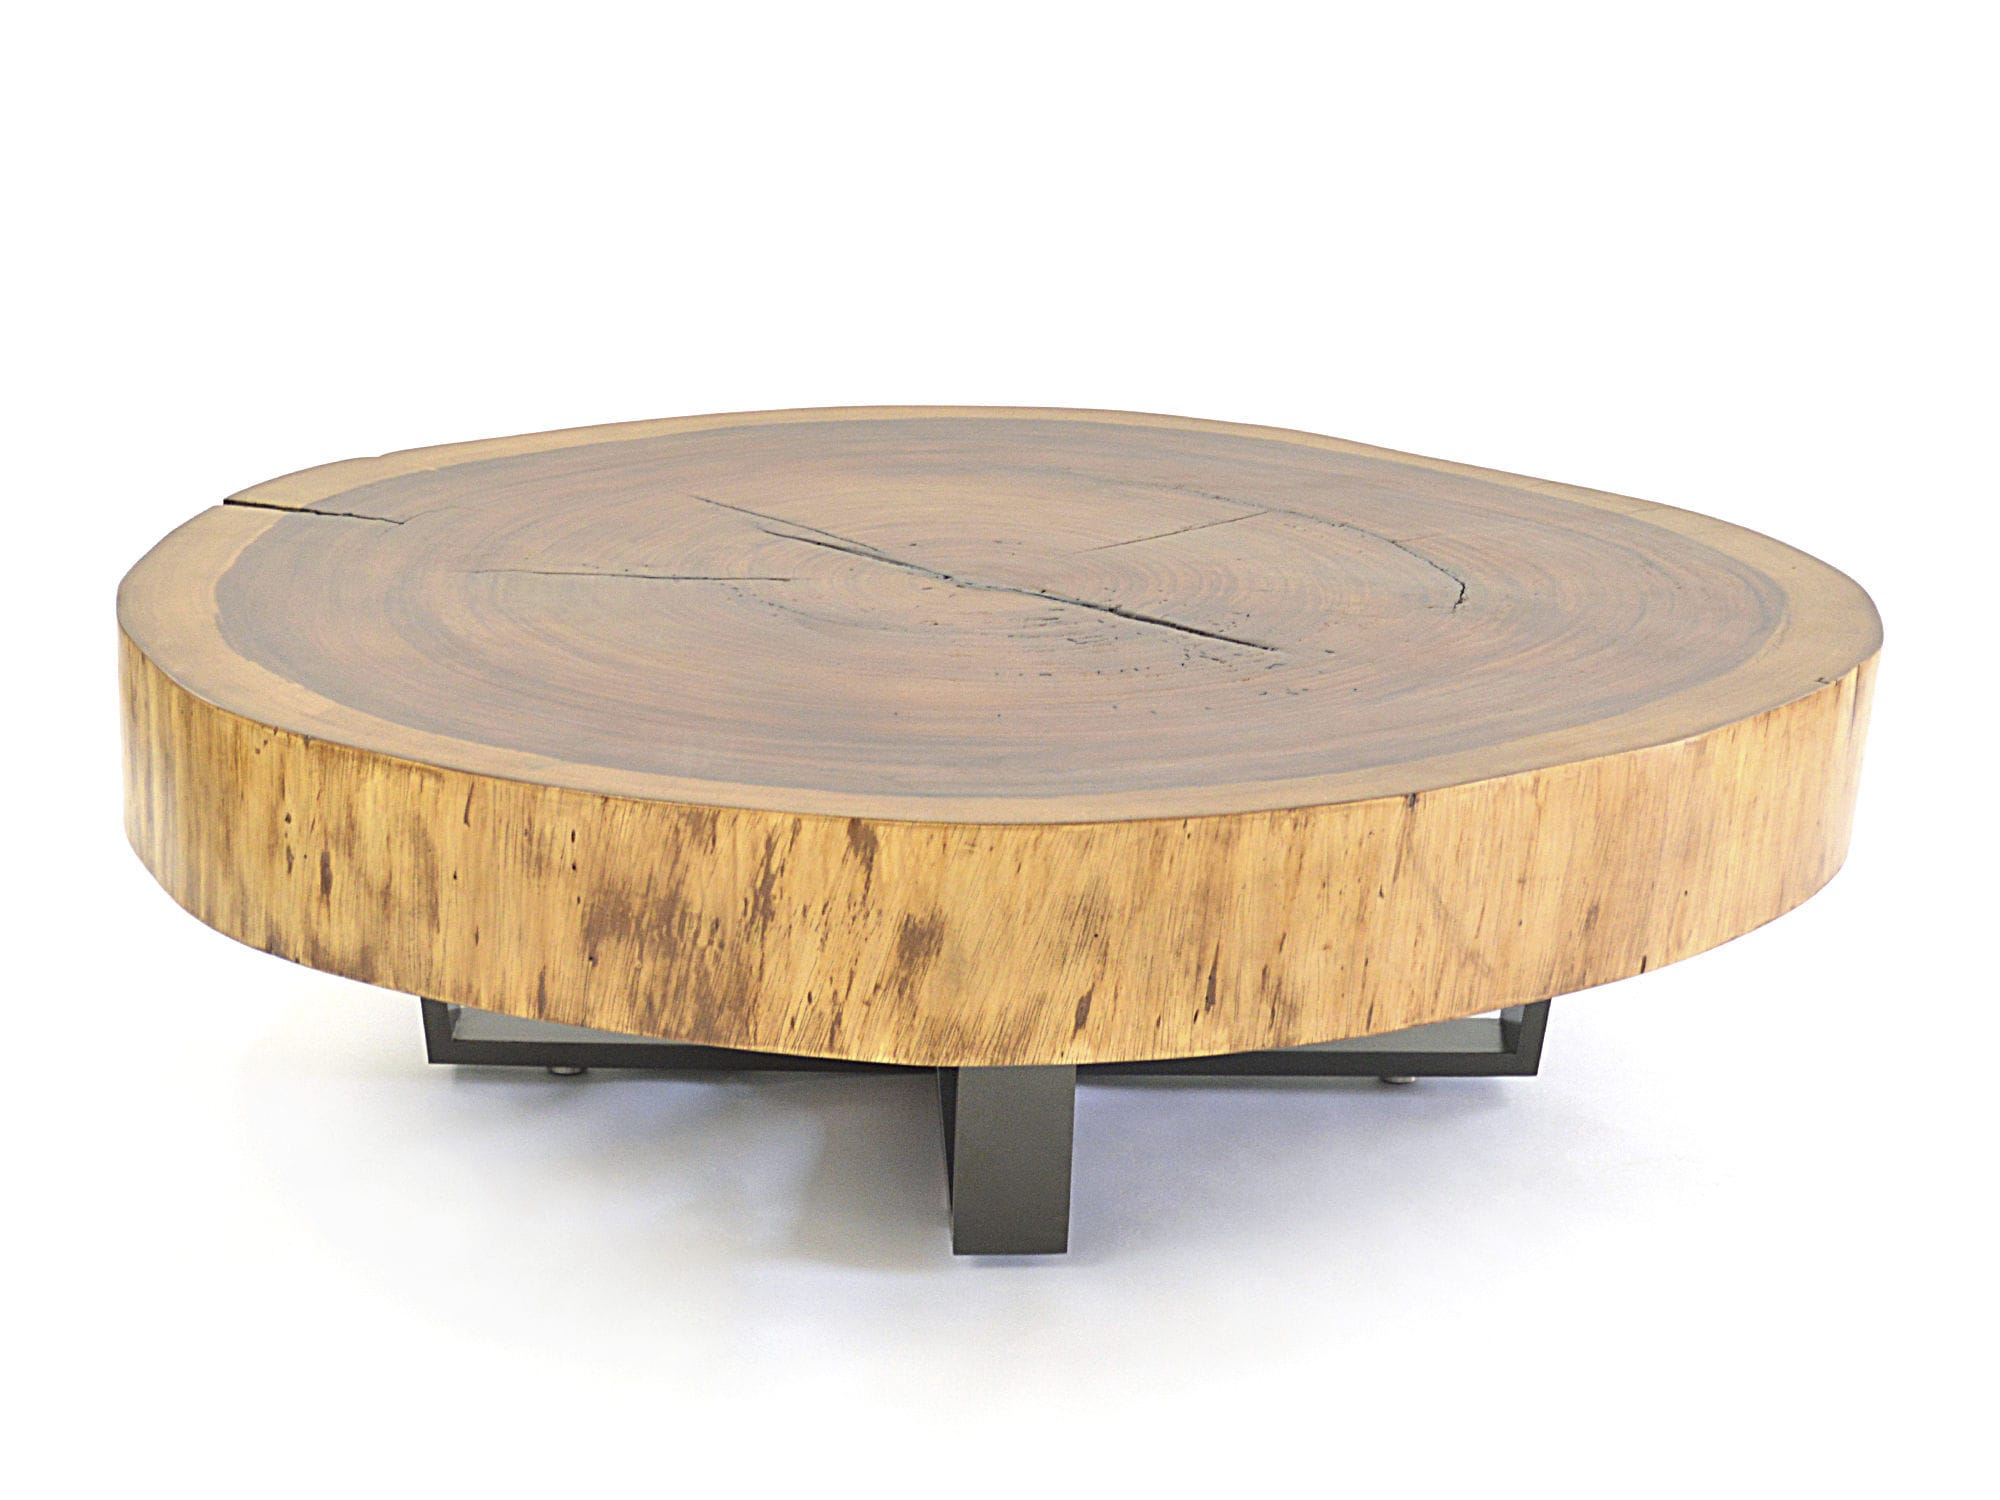 Table Basse Bois Metal Ronde Table Basse Contemporaine En Bois En Métal Ronde Bolacha